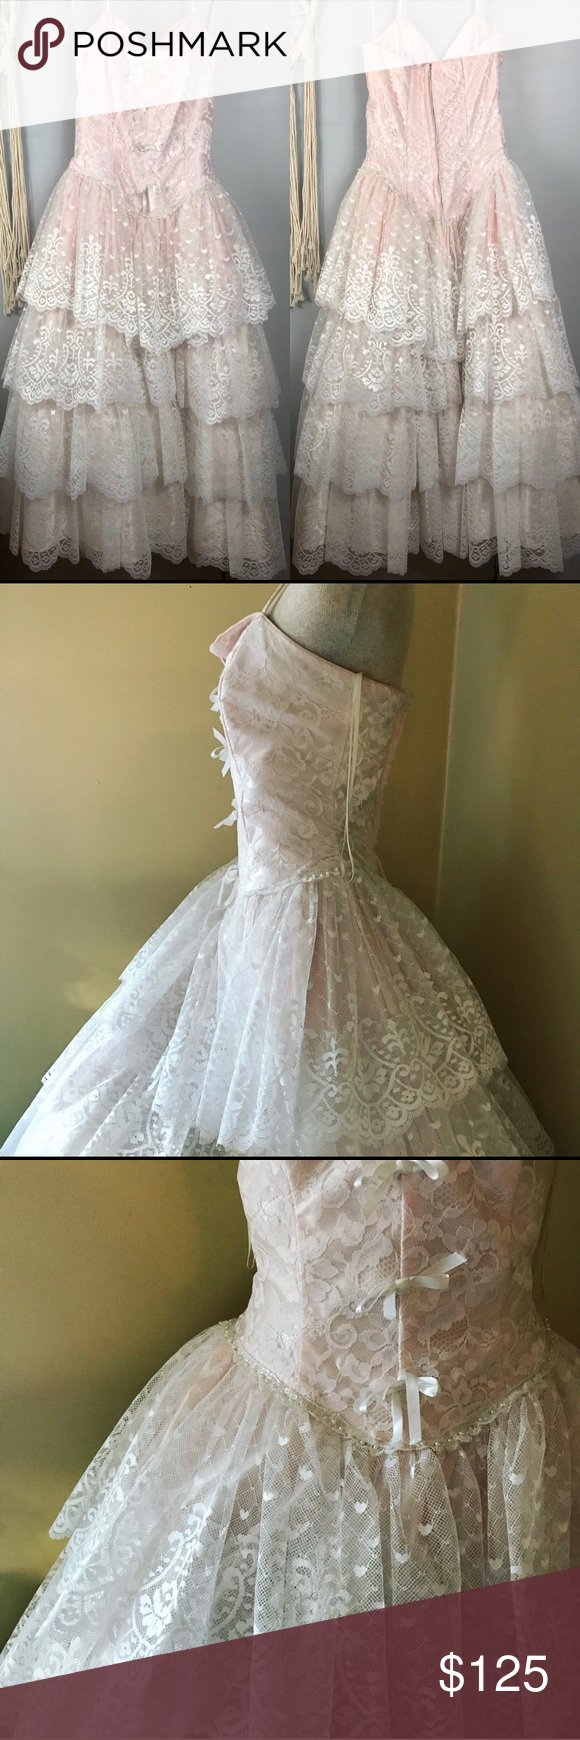 Vintage us alfred angelo prom dress lace beaded my posh picks